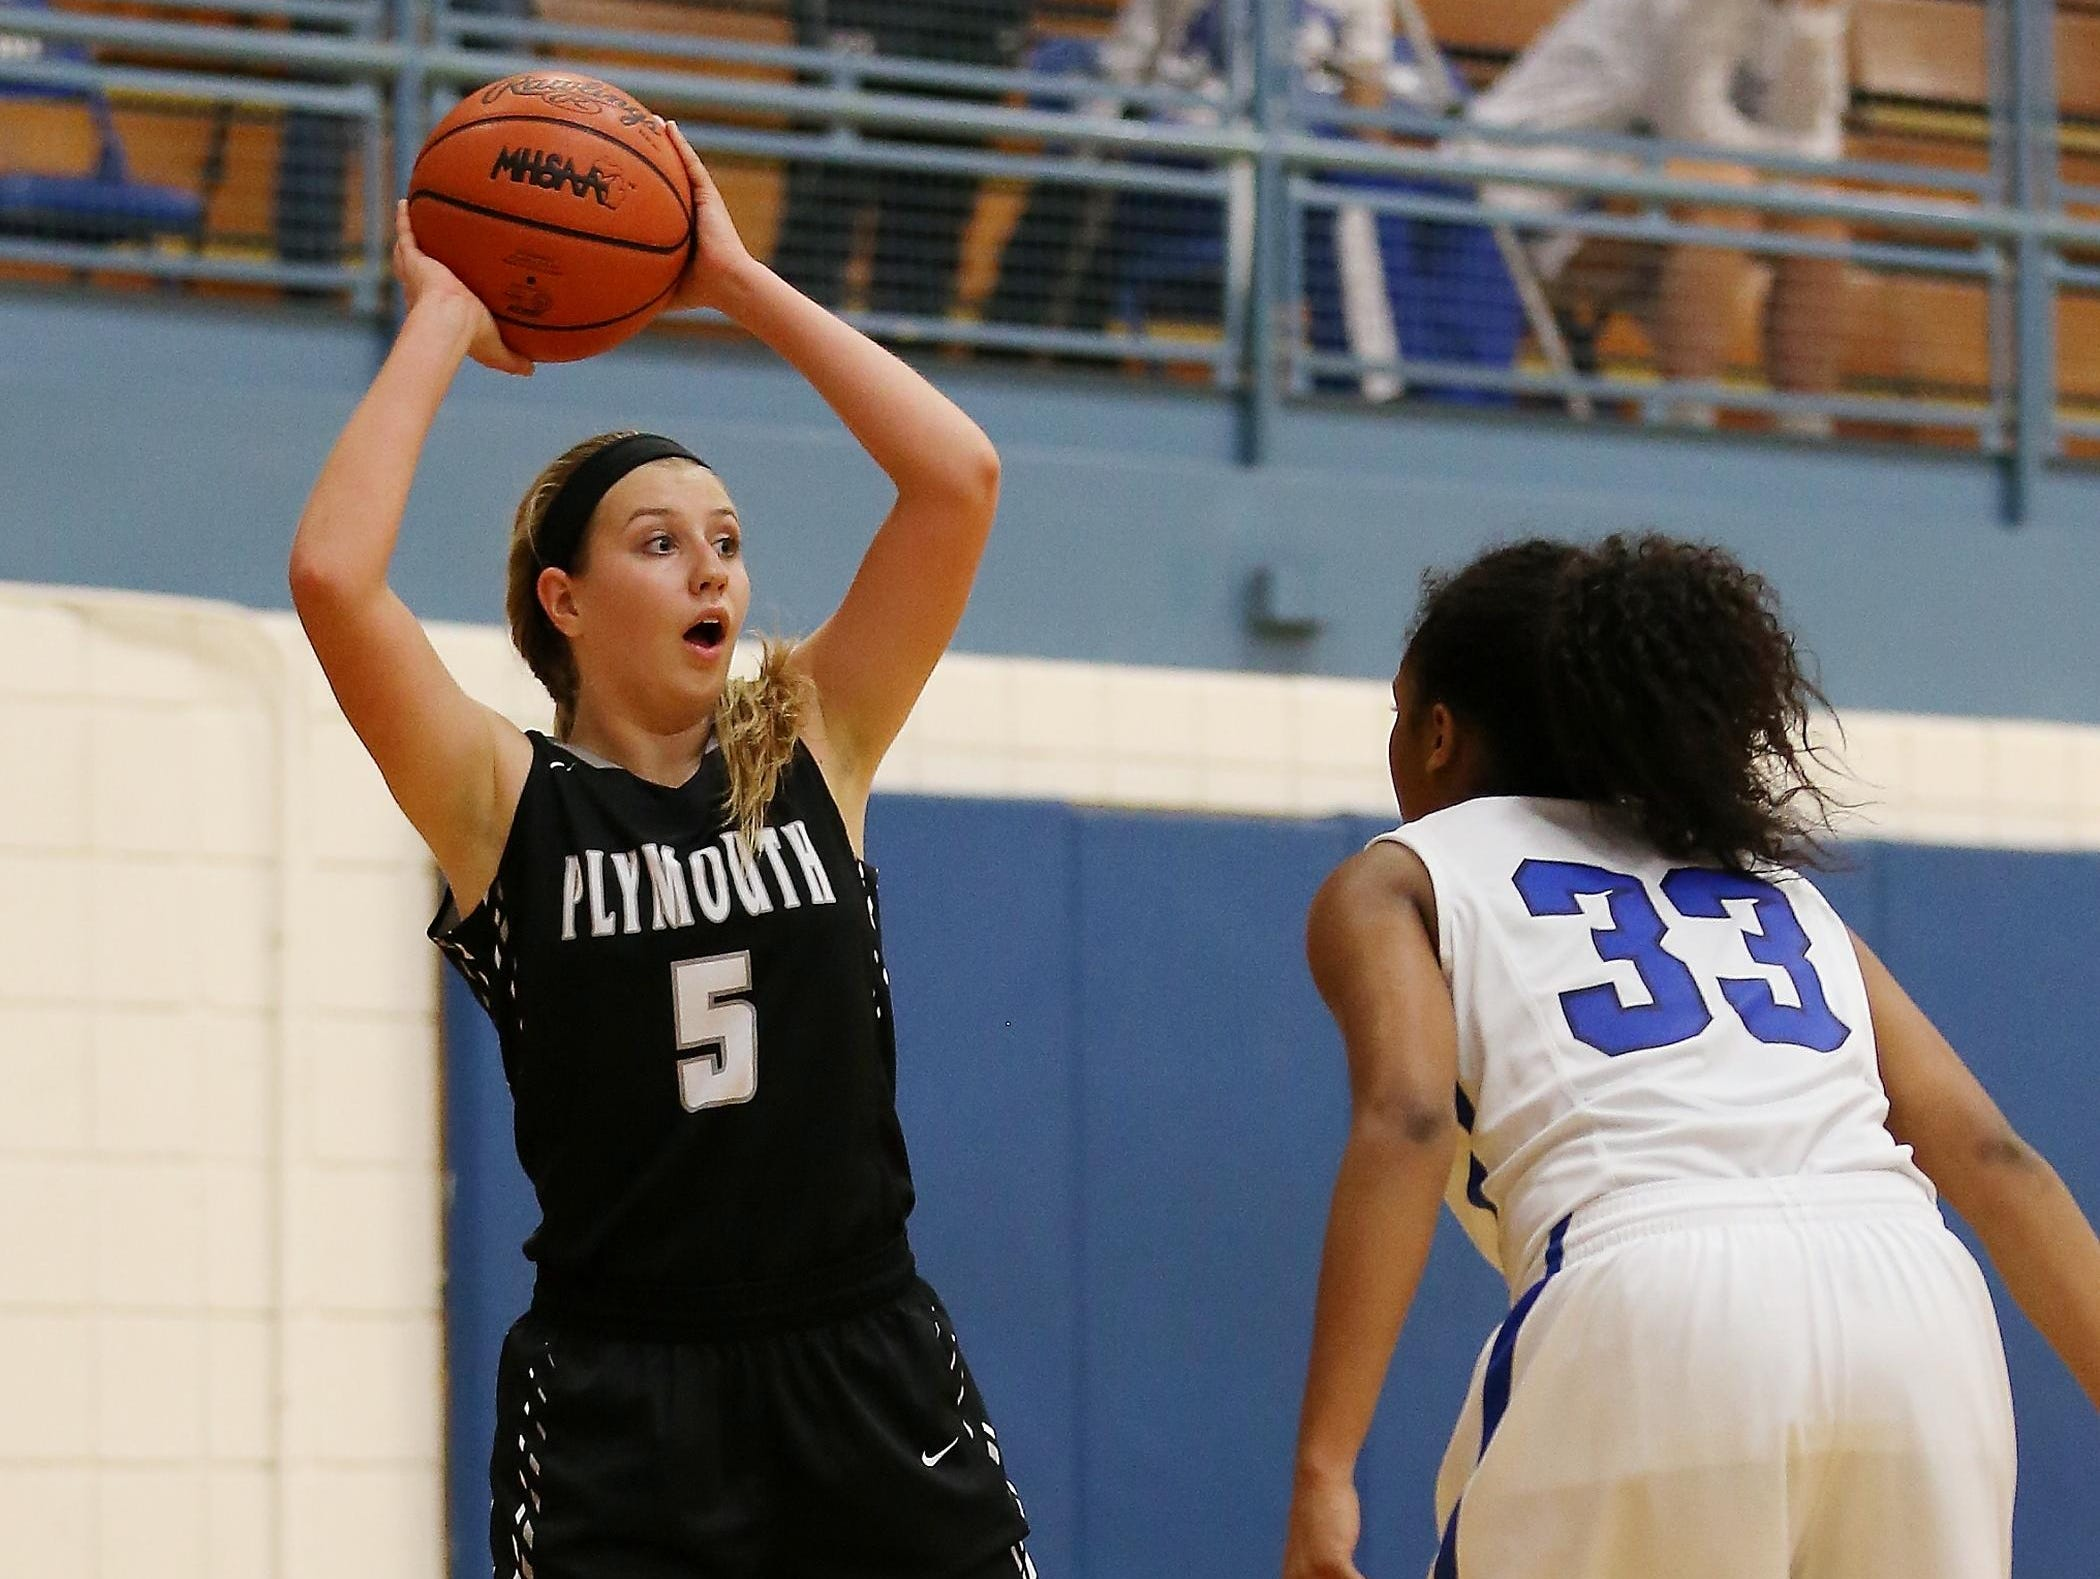 Plymouth's Hannah Badger looks for a teammate to pass the ball to, while Salem's Zoe Talley guards her.